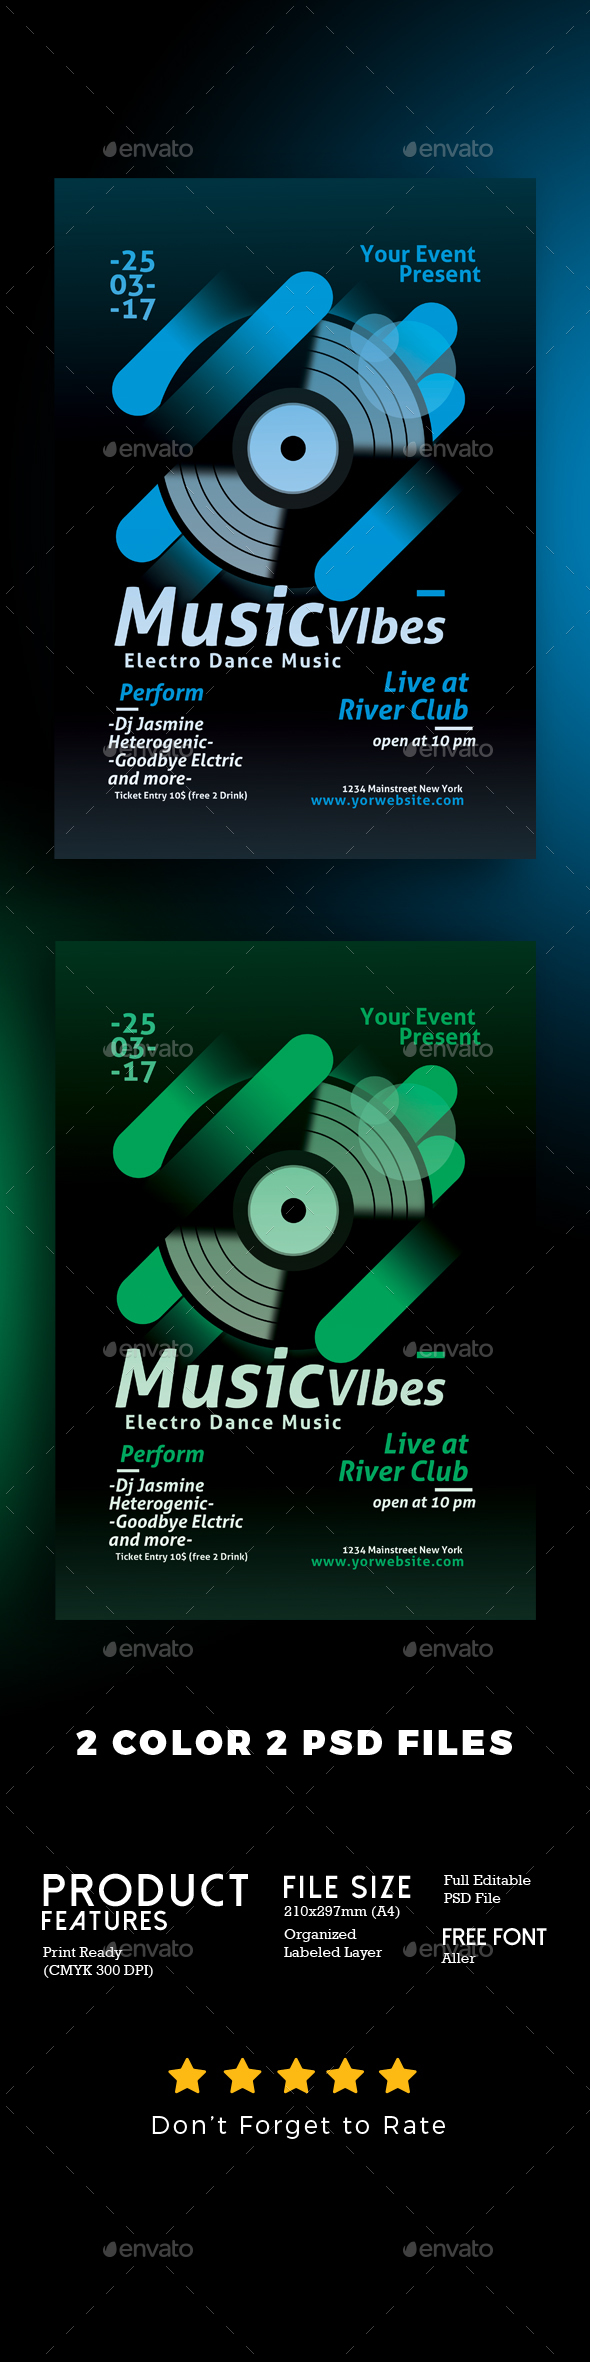 Minimal Electro Music Flyer - Clubs & Parties Events